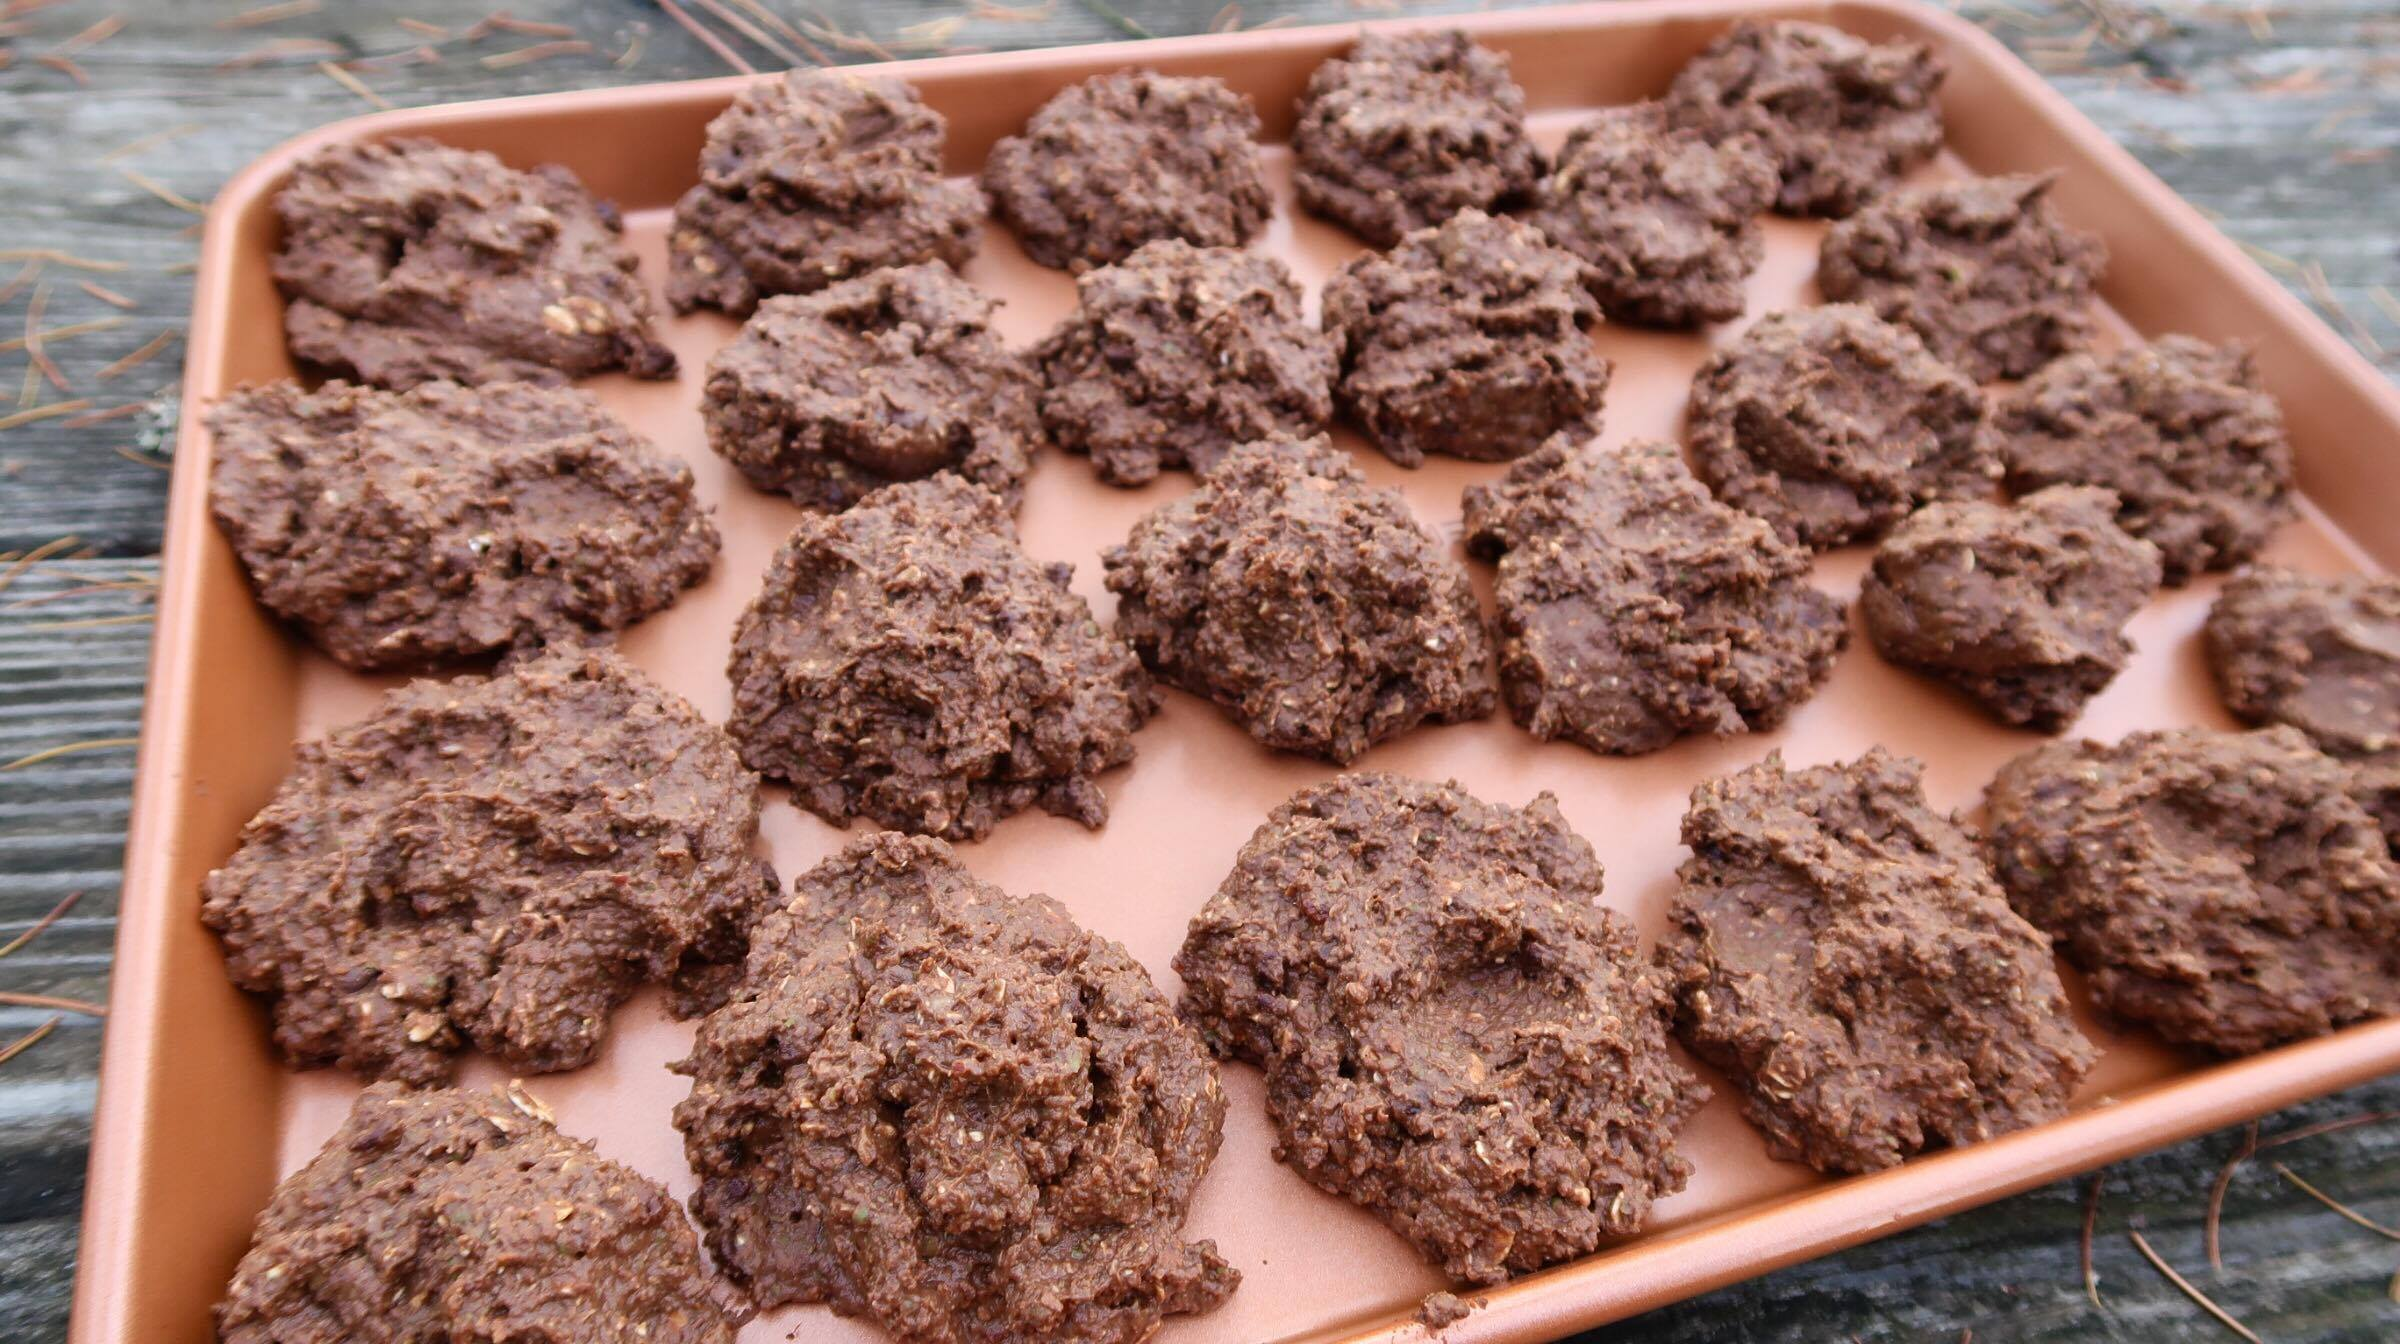 nutritious-chocolate-chip-cookie-uncooked cookies.jpg